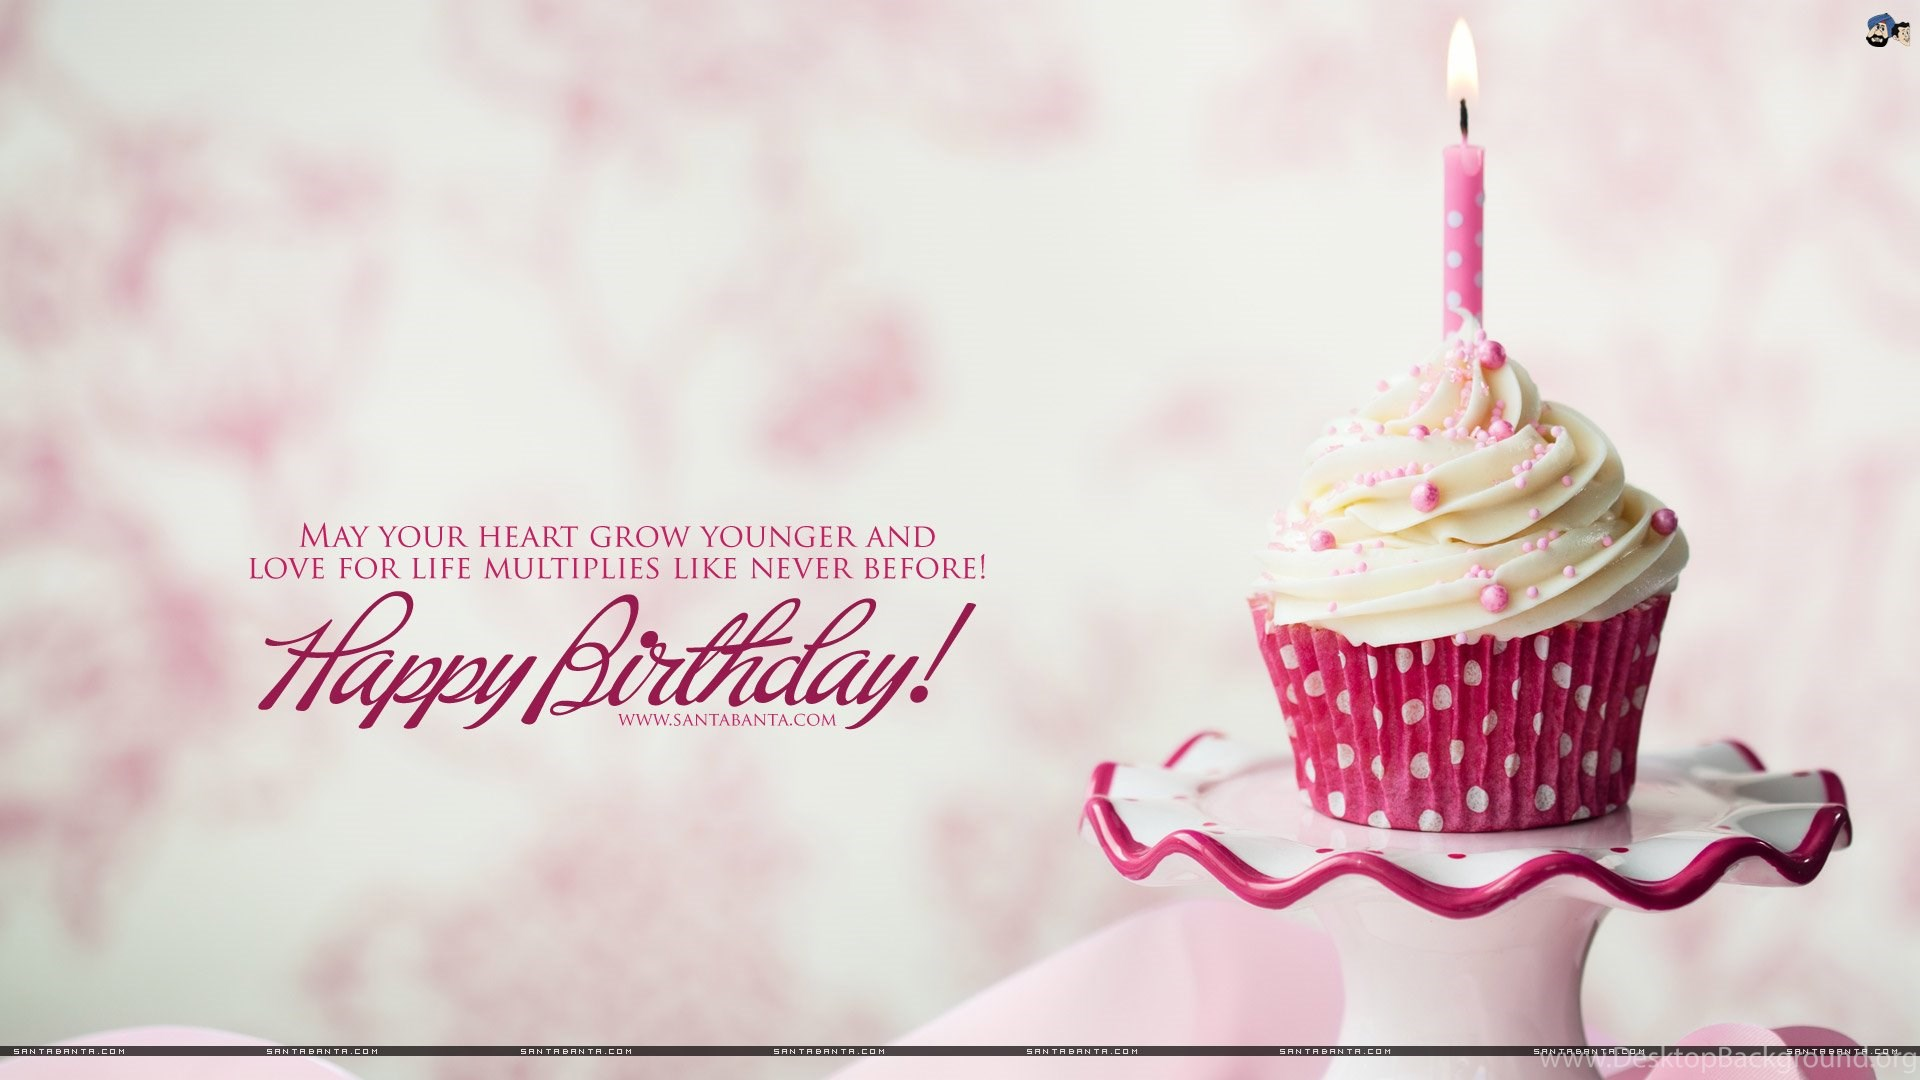 Happy birthday wallpapers hd desktop background - Happy birthday wallpaper download hd ...